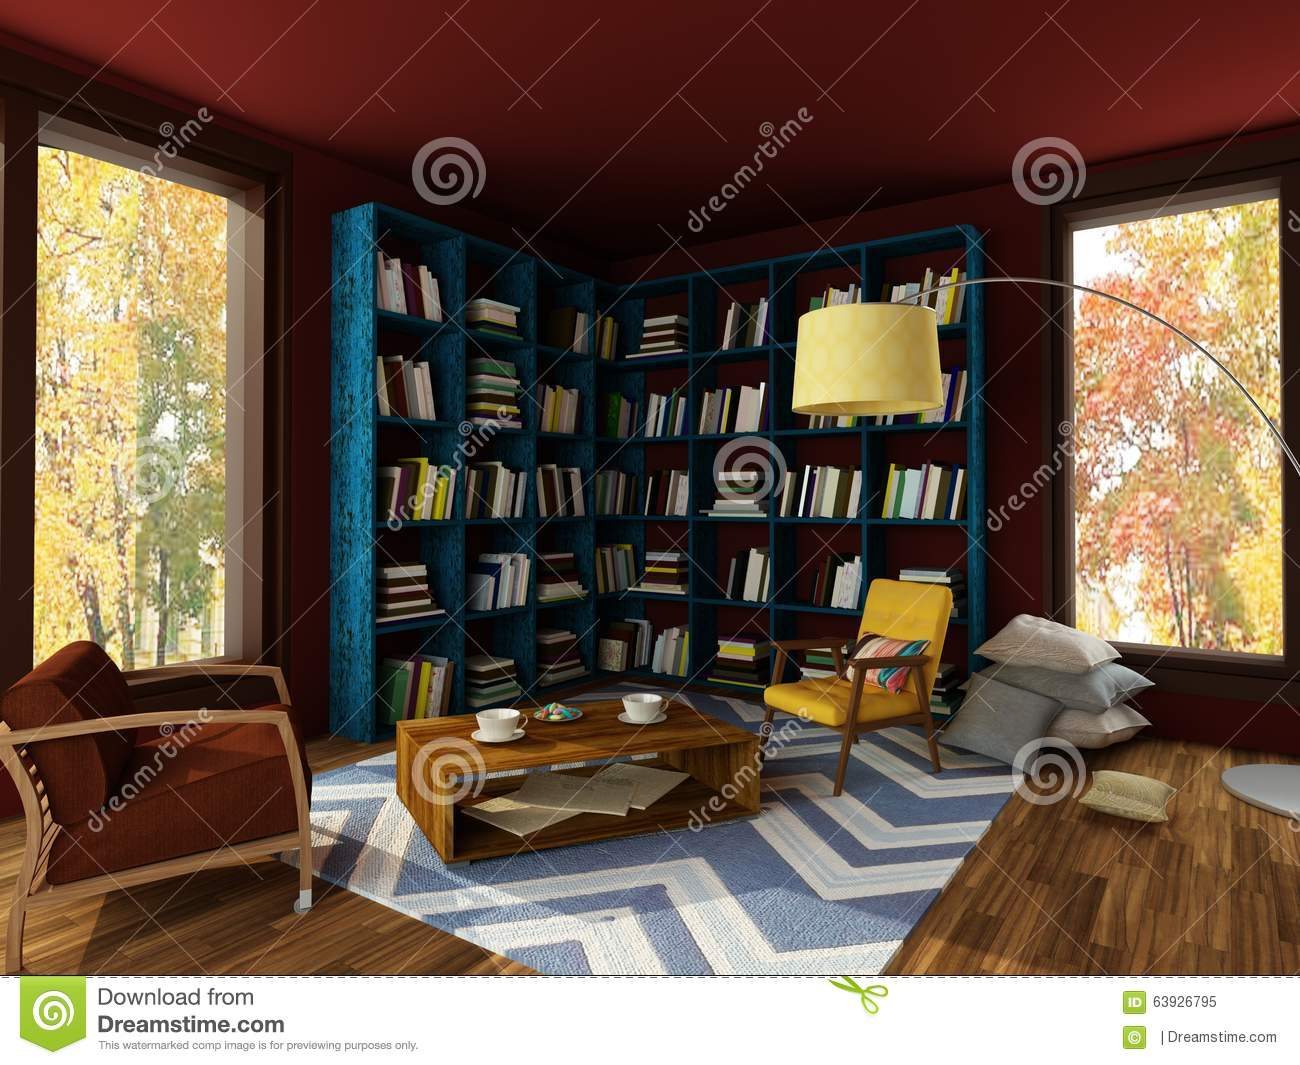 Cozy Room rendering of bright interior of cozy room in dark colors stock